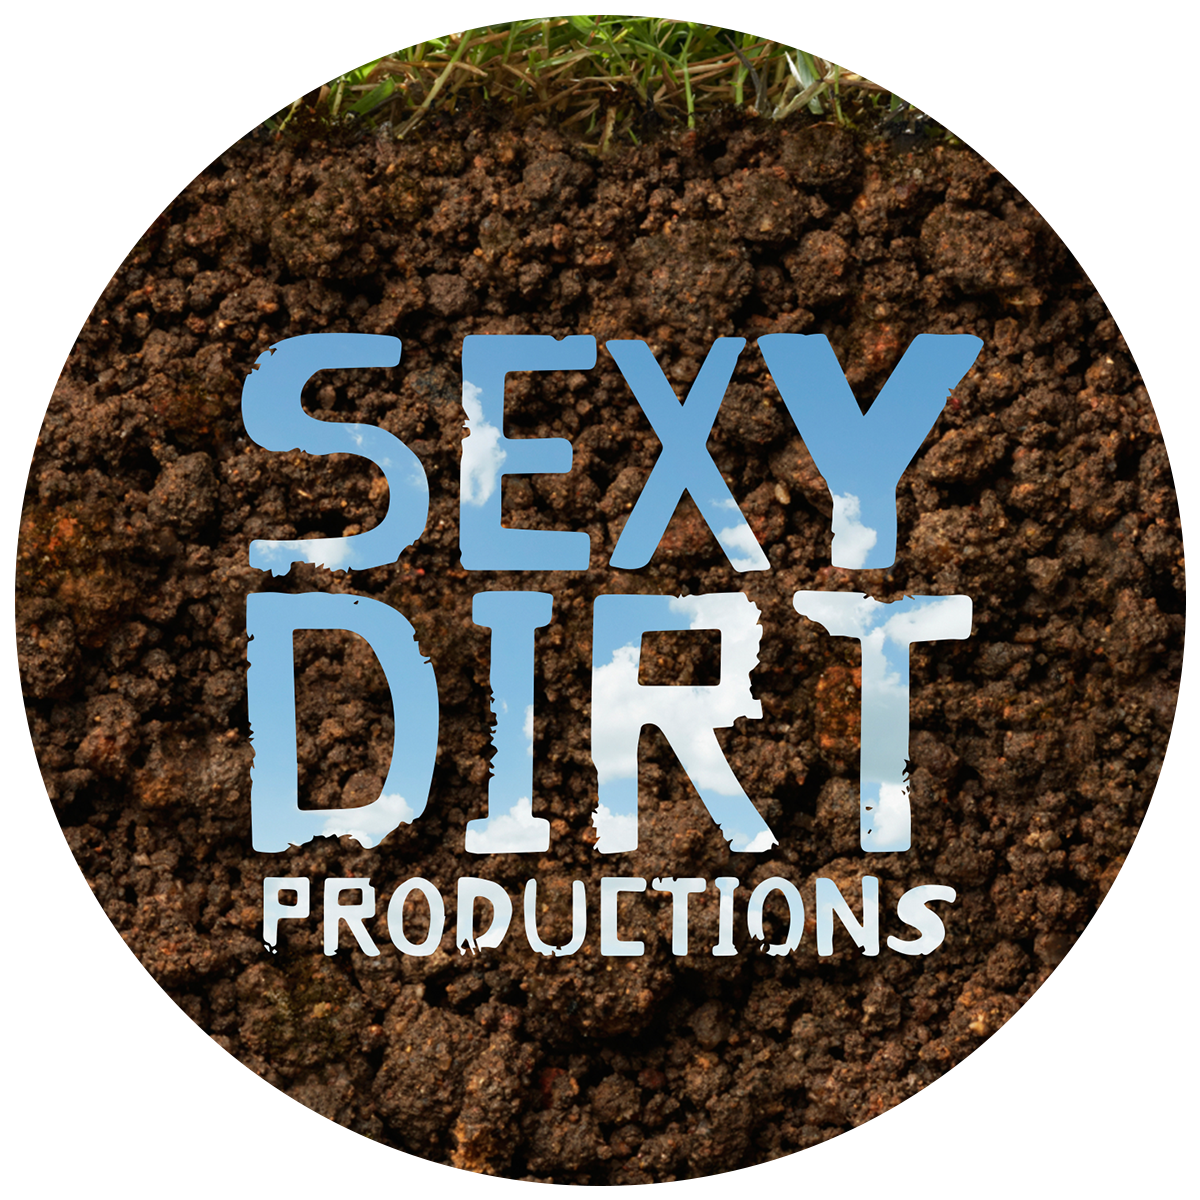 Sexy Dirt Productions